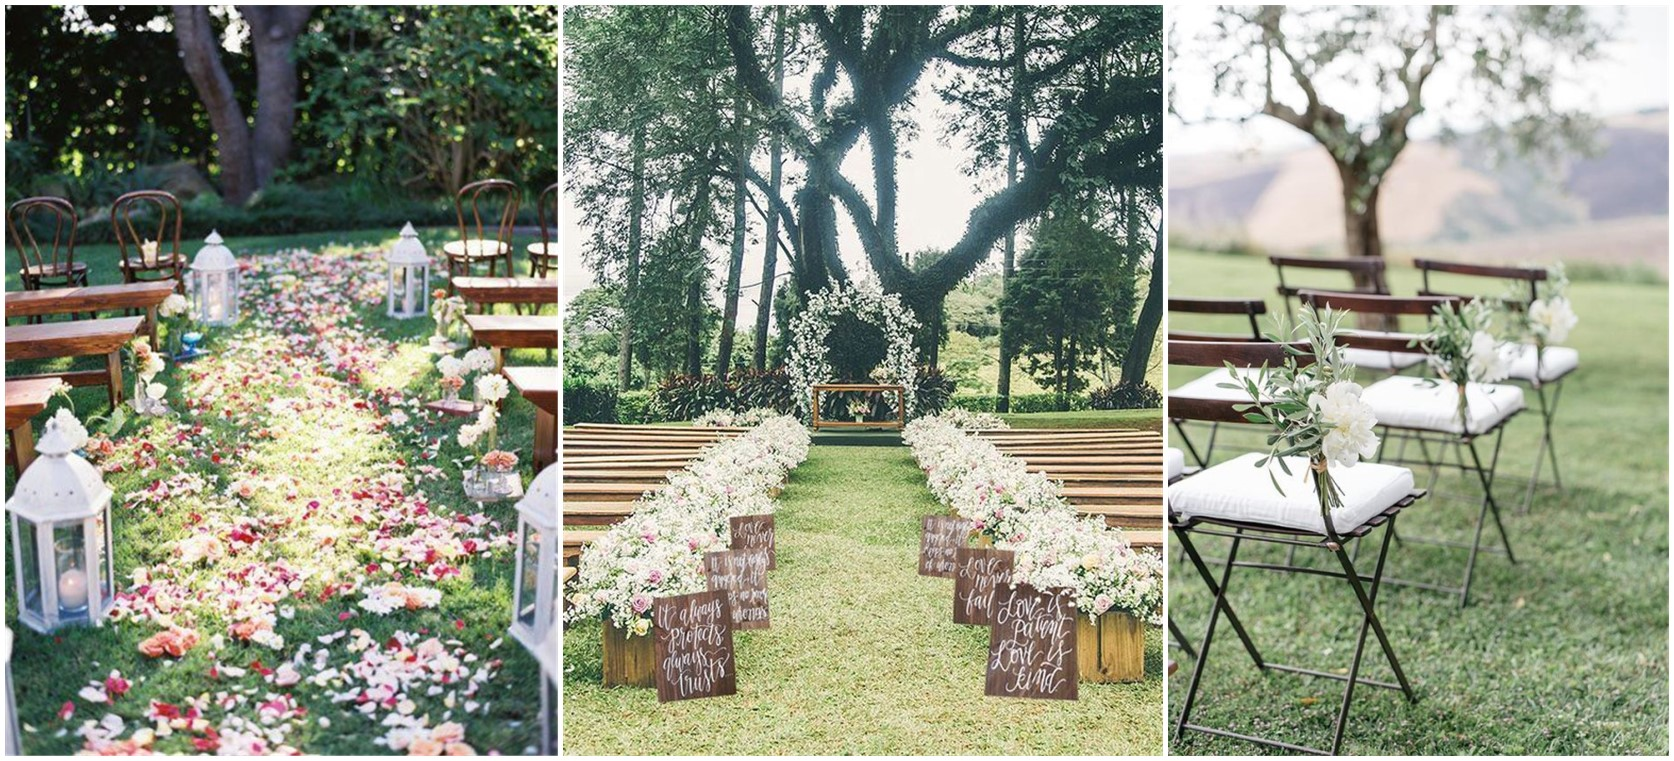 Outdoor Wedding Ideas: Out Door & ... Outdoor Revide Grupo Que Financiou De